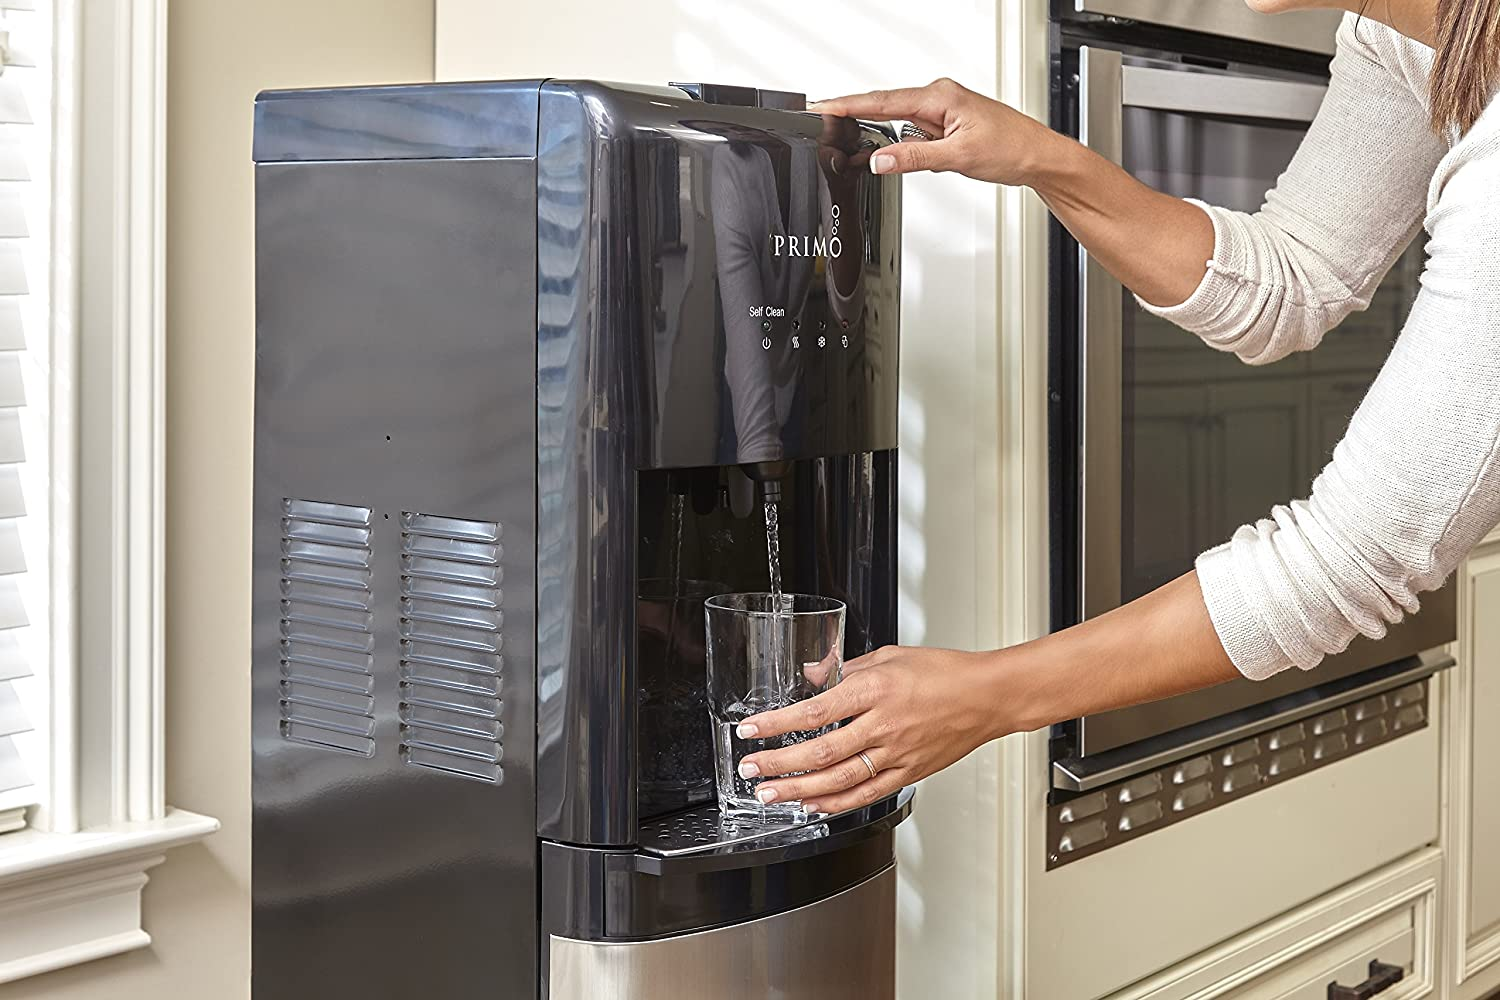 Primo Self-Sanitizing Bottom Load Water Cooler Dispenser - 3 temperature modes